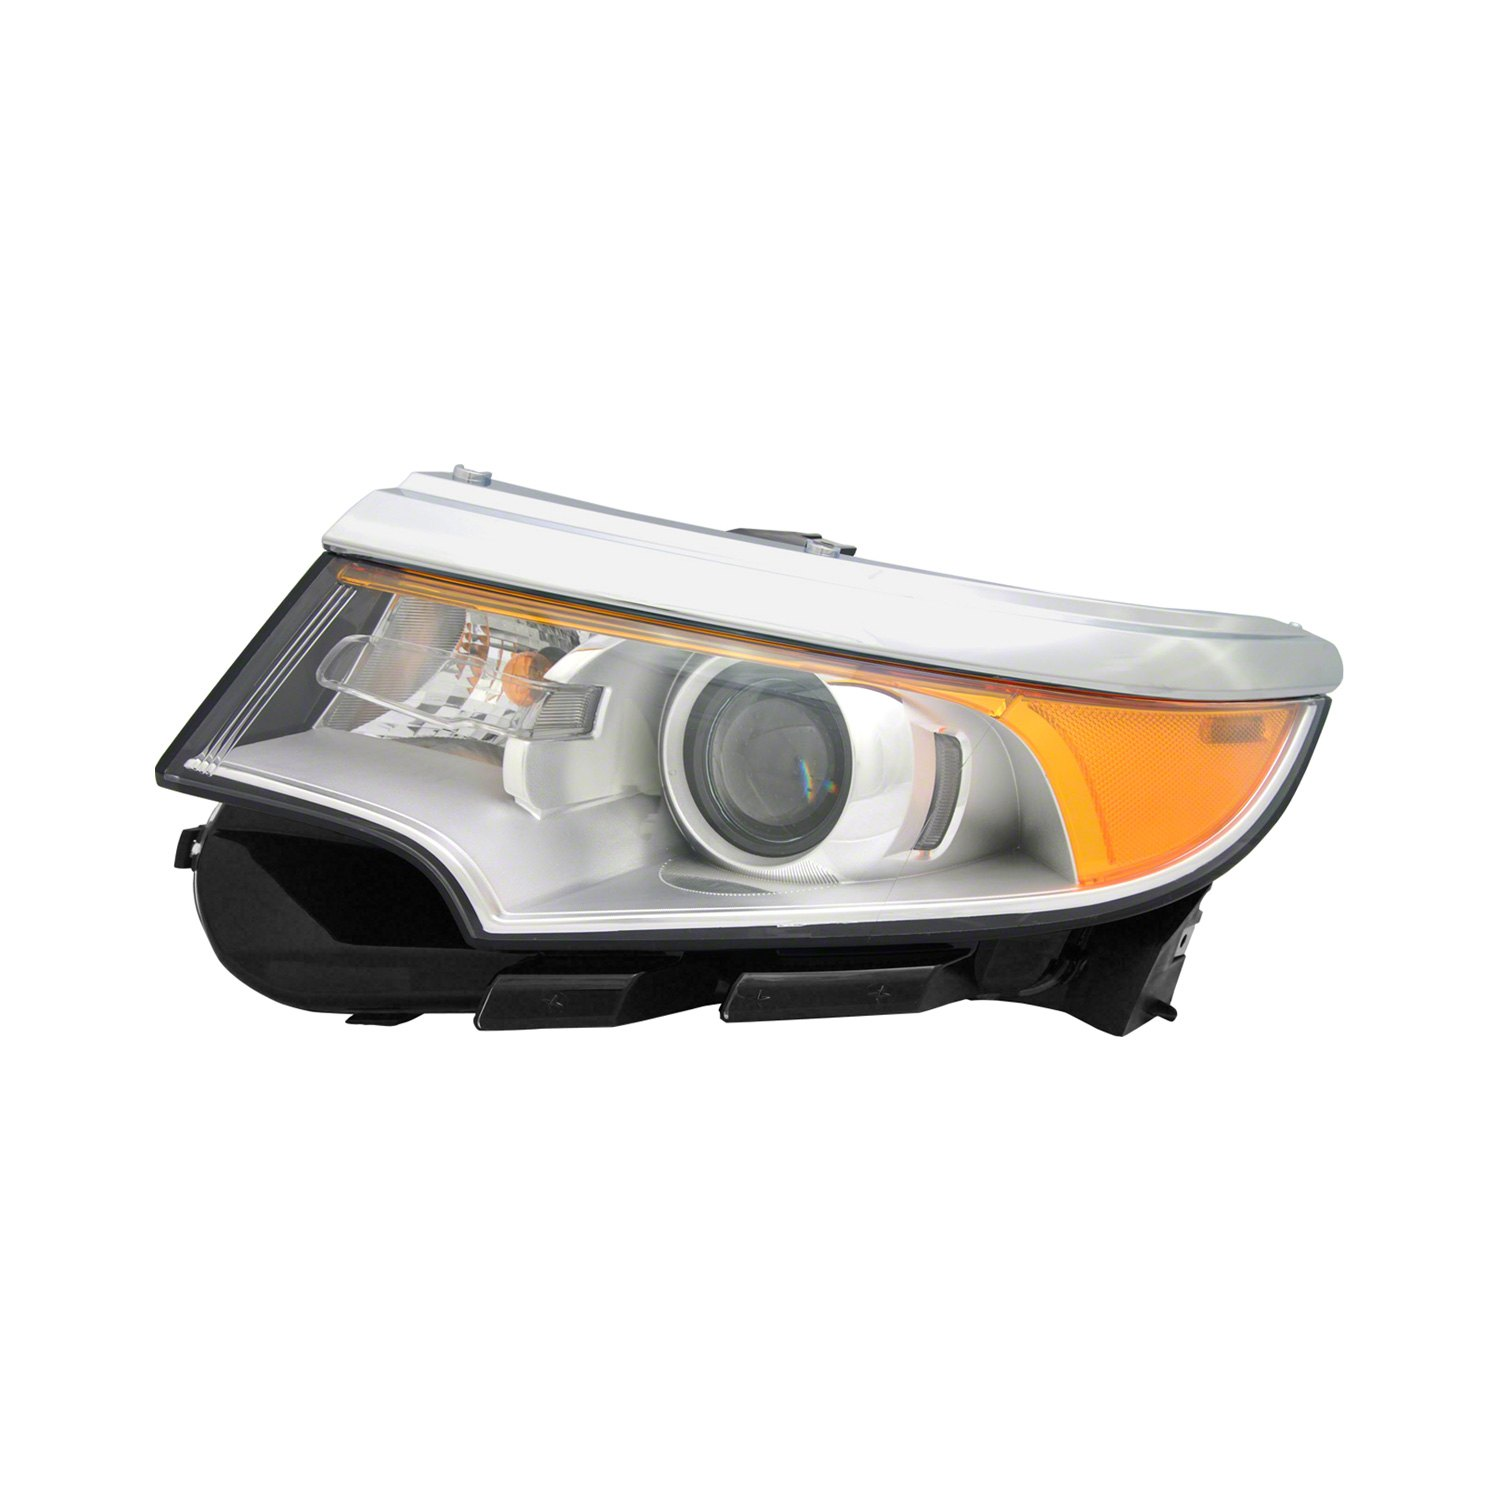 2013 Ford Taurus Headlight Replacement : Replace ford edge replacement headlight